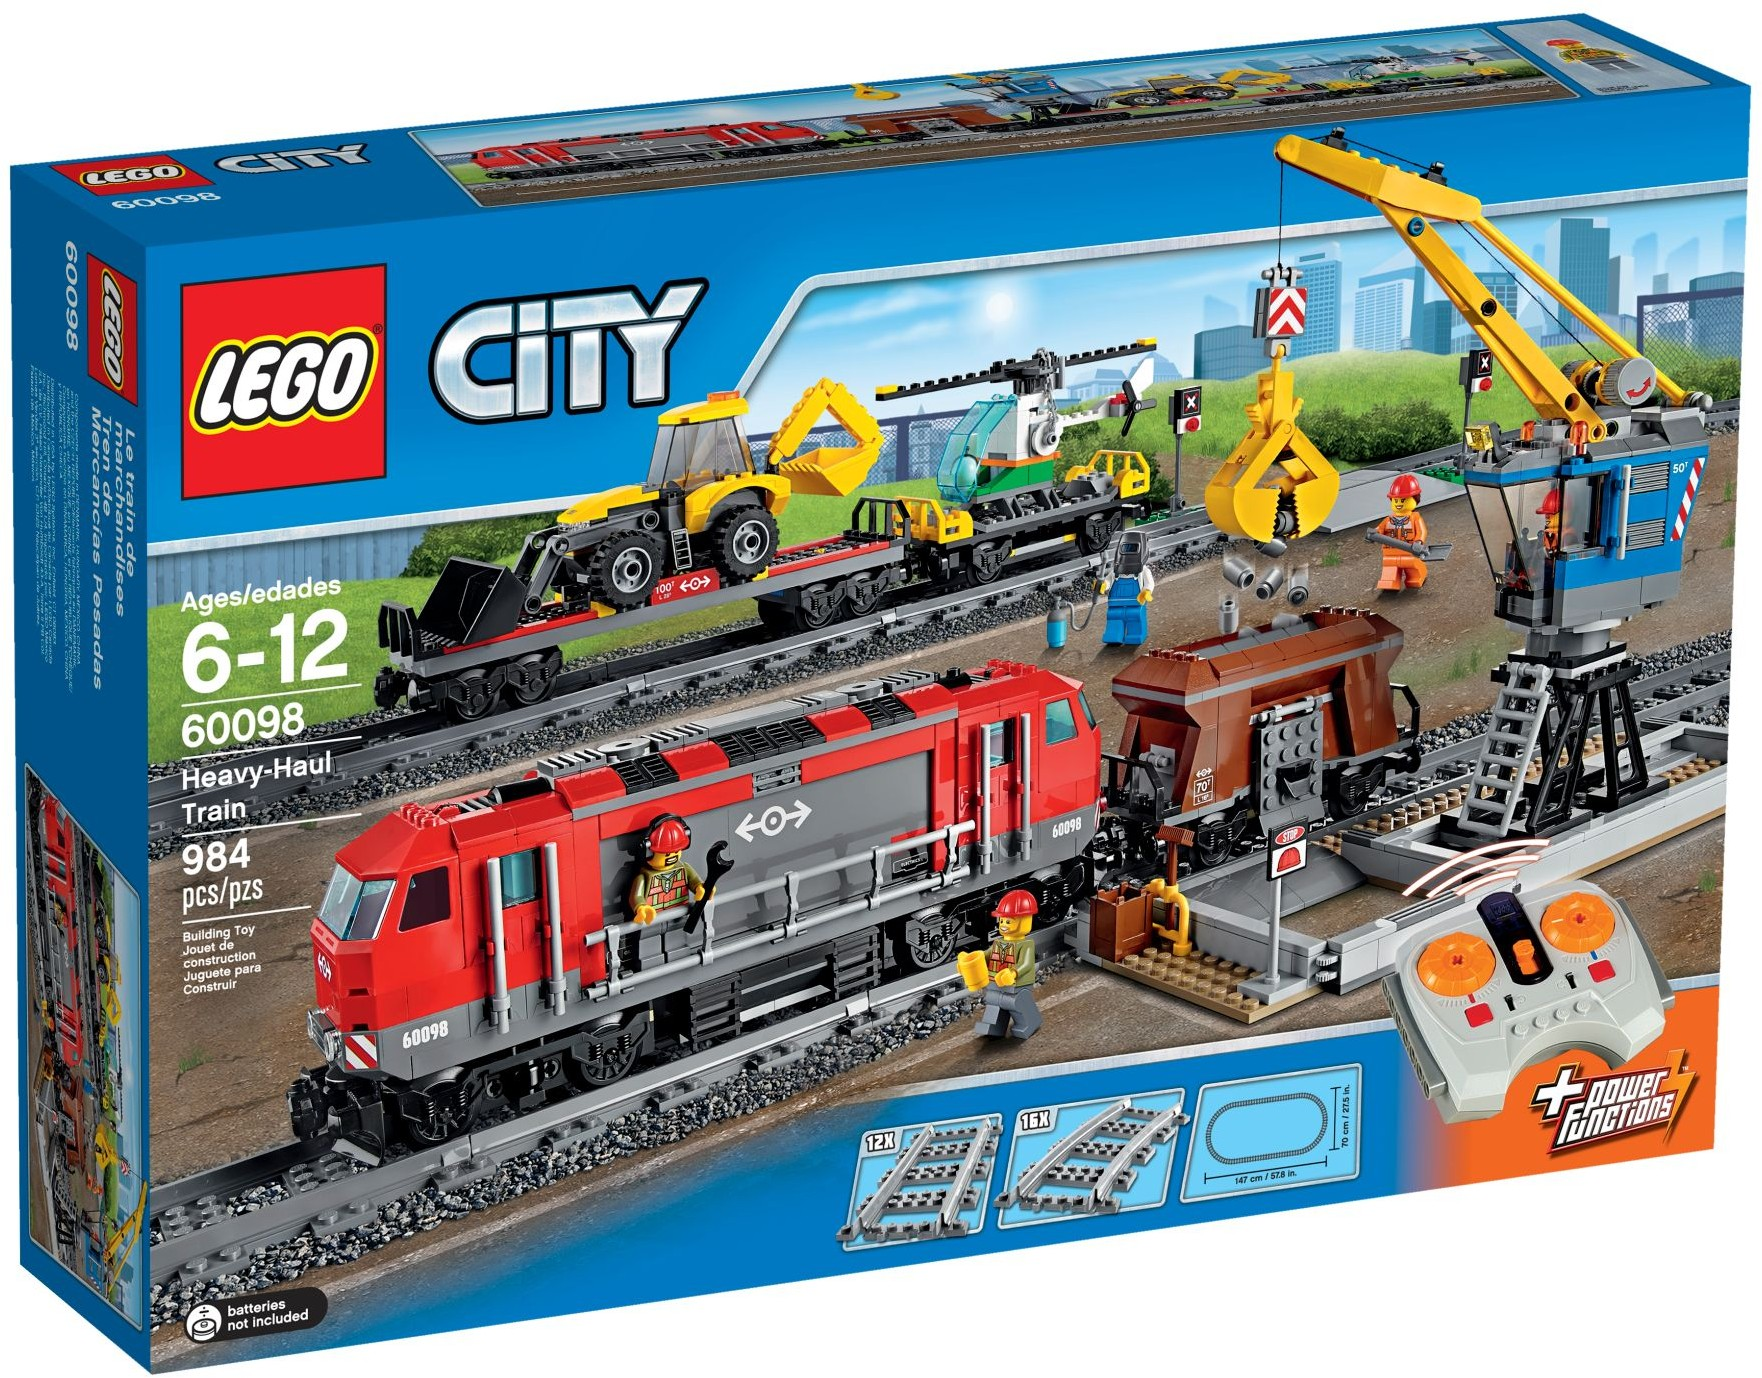 LEGO 60098 - City - Heavy-Haul Train